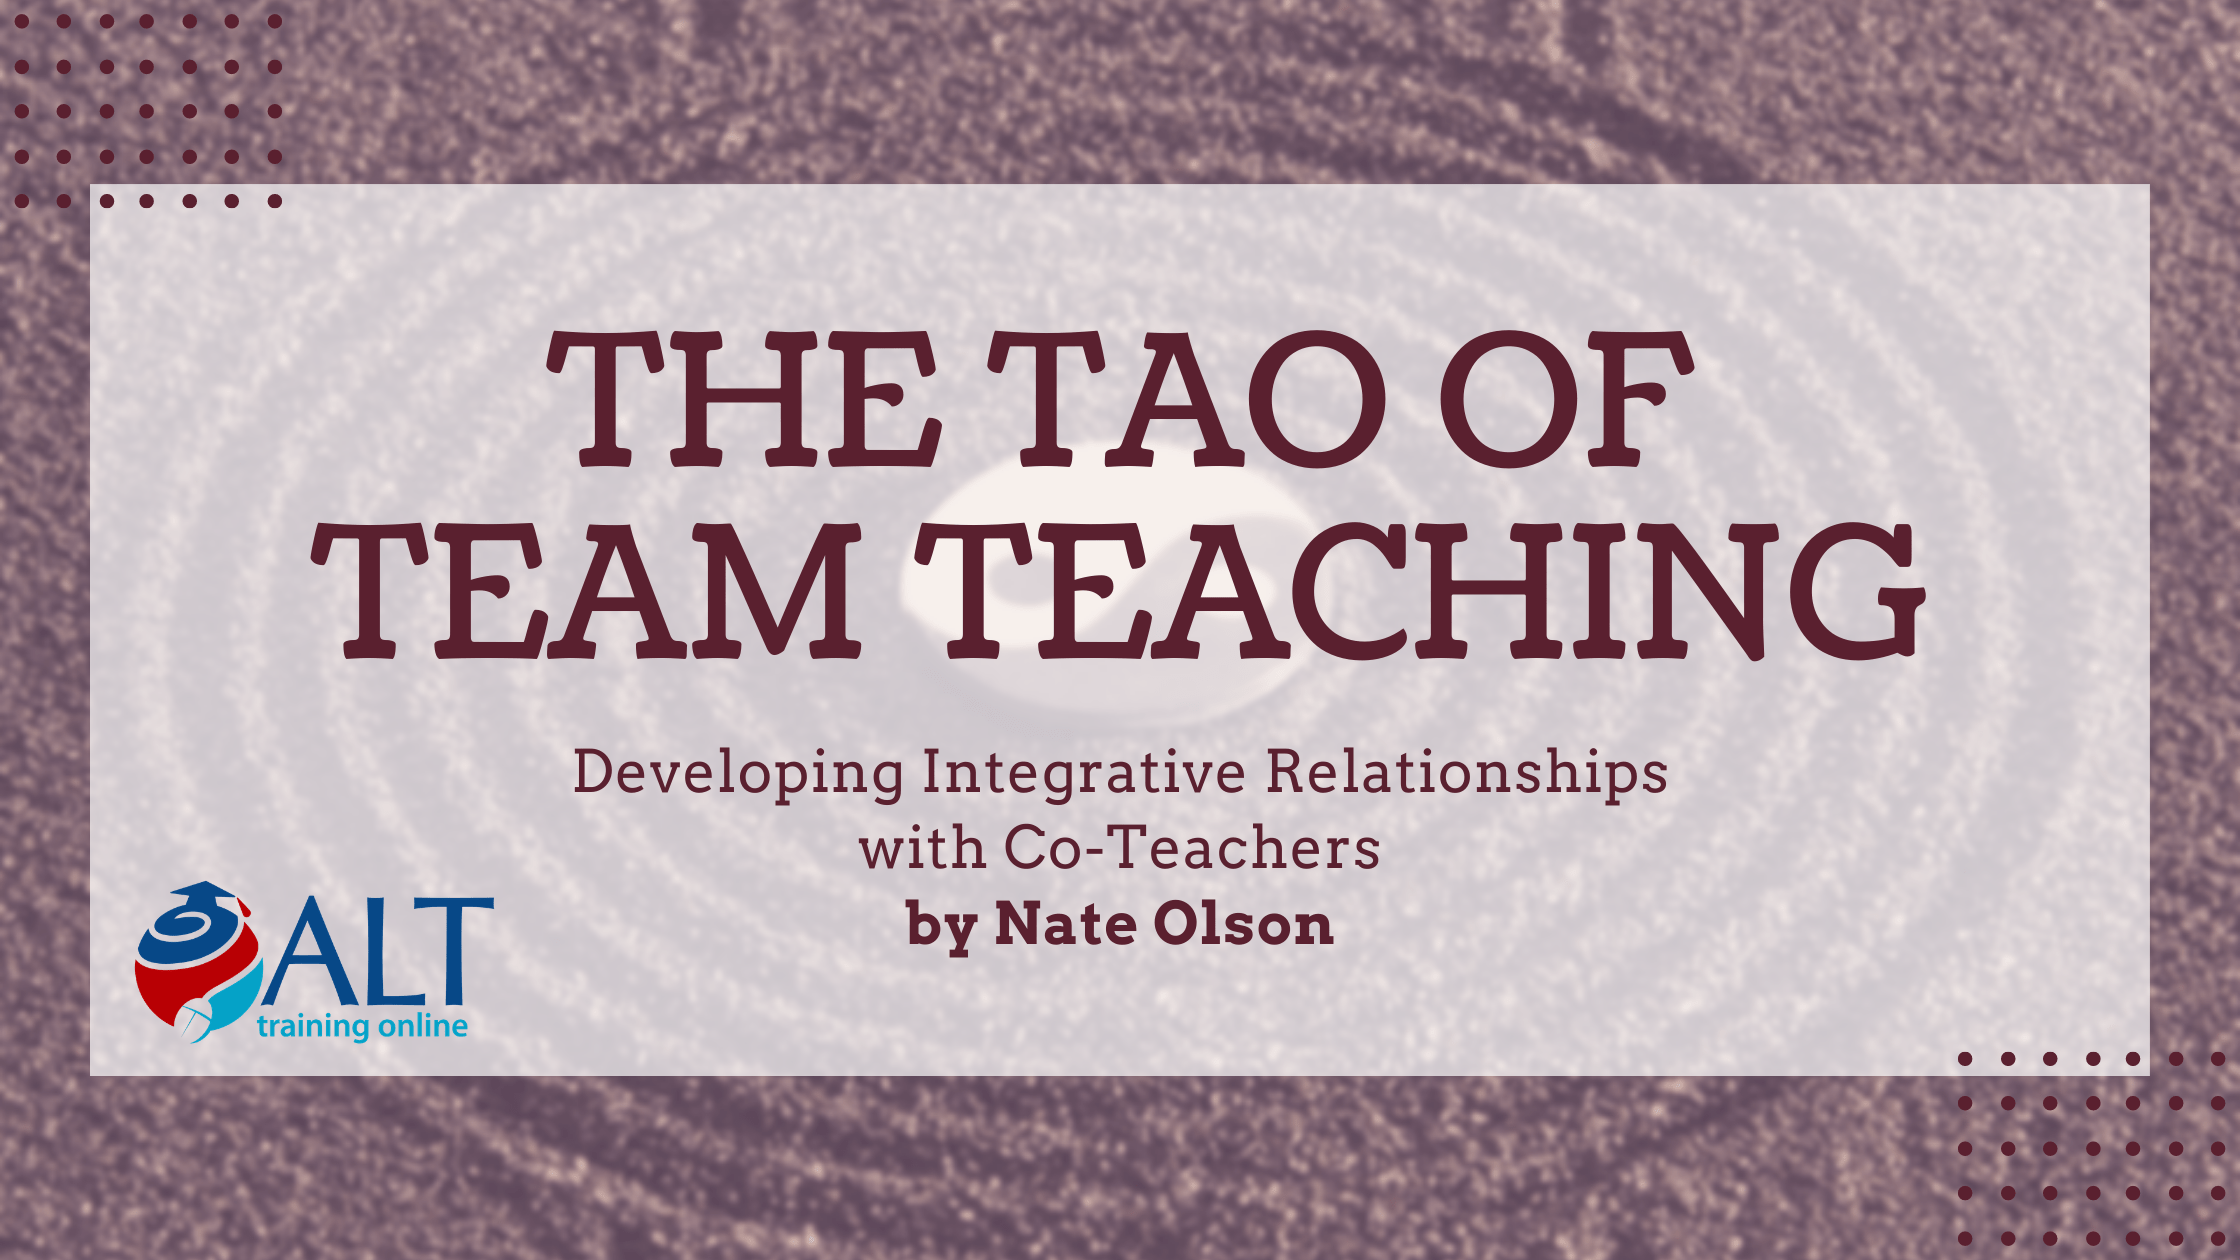 The Tao of Team Teaching: Developing Integrative Relationships with Co-Teachers by Nate Olson